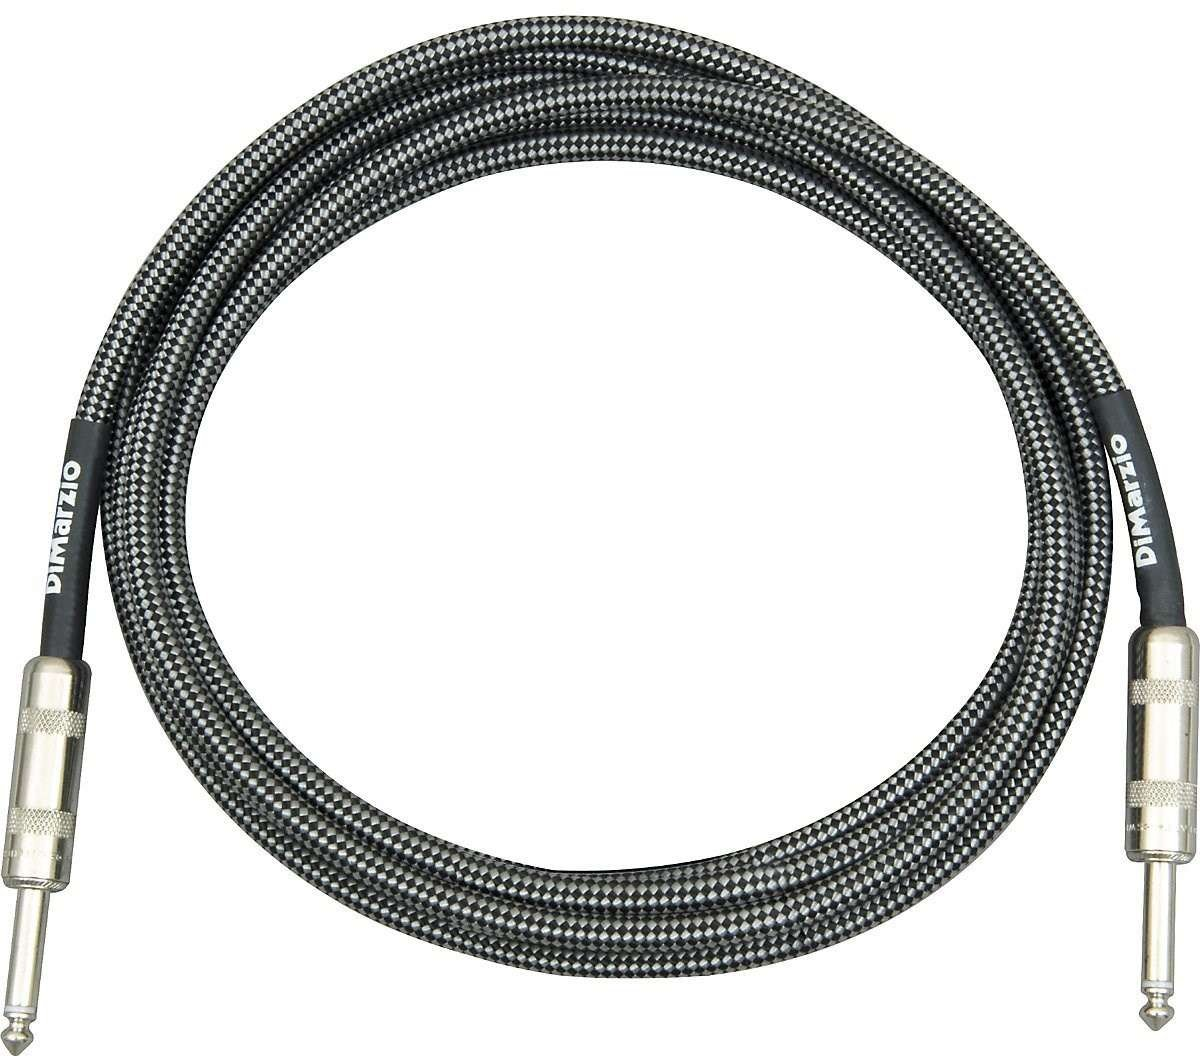 DiMarzio Instrument Cable Black and Silver 18 ft.